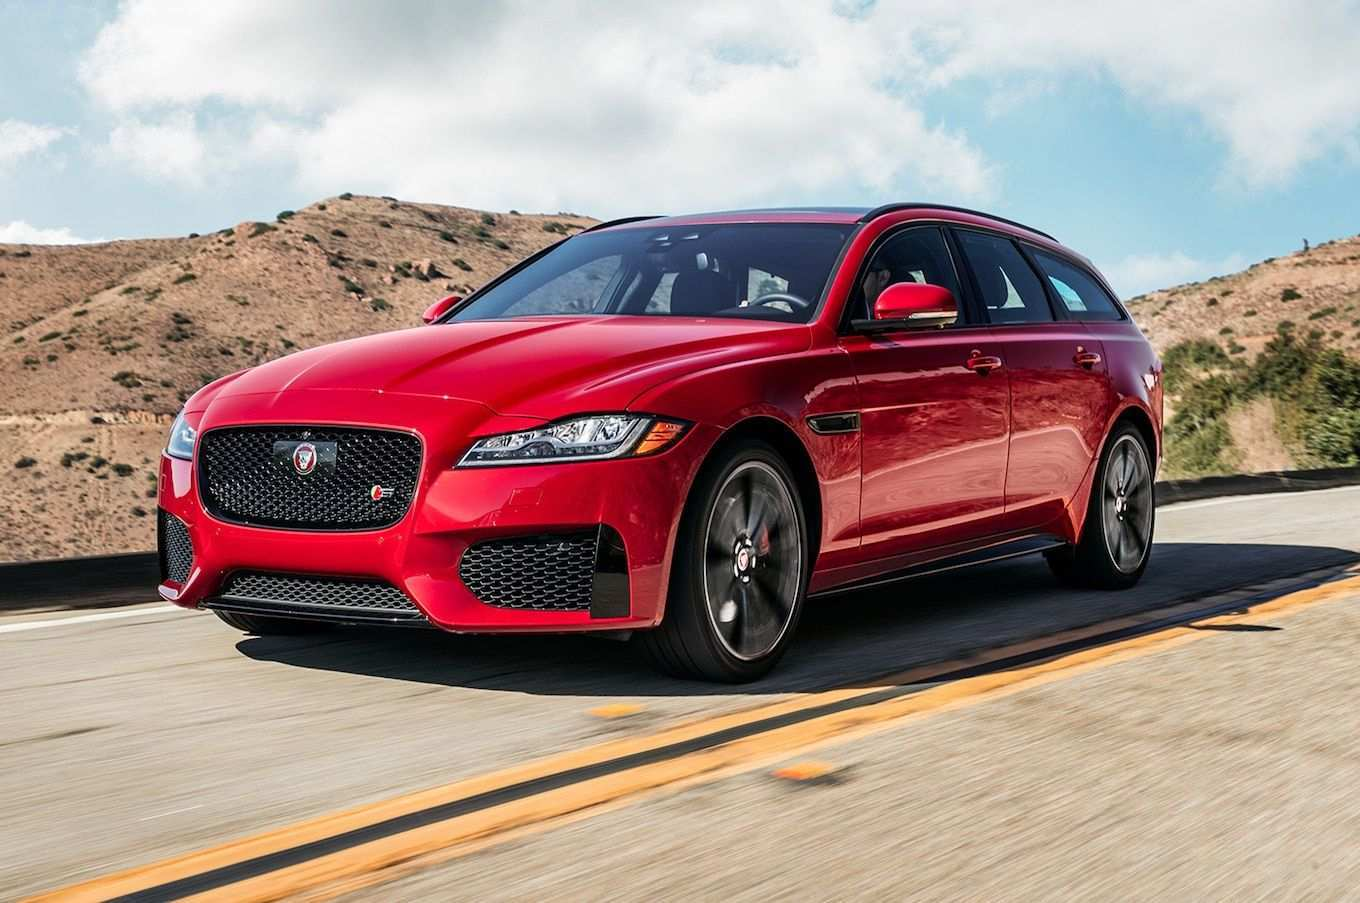 41 New 2019 Jaguar Station Wagon Price and Review by 2019 Jaguar Station Wagon